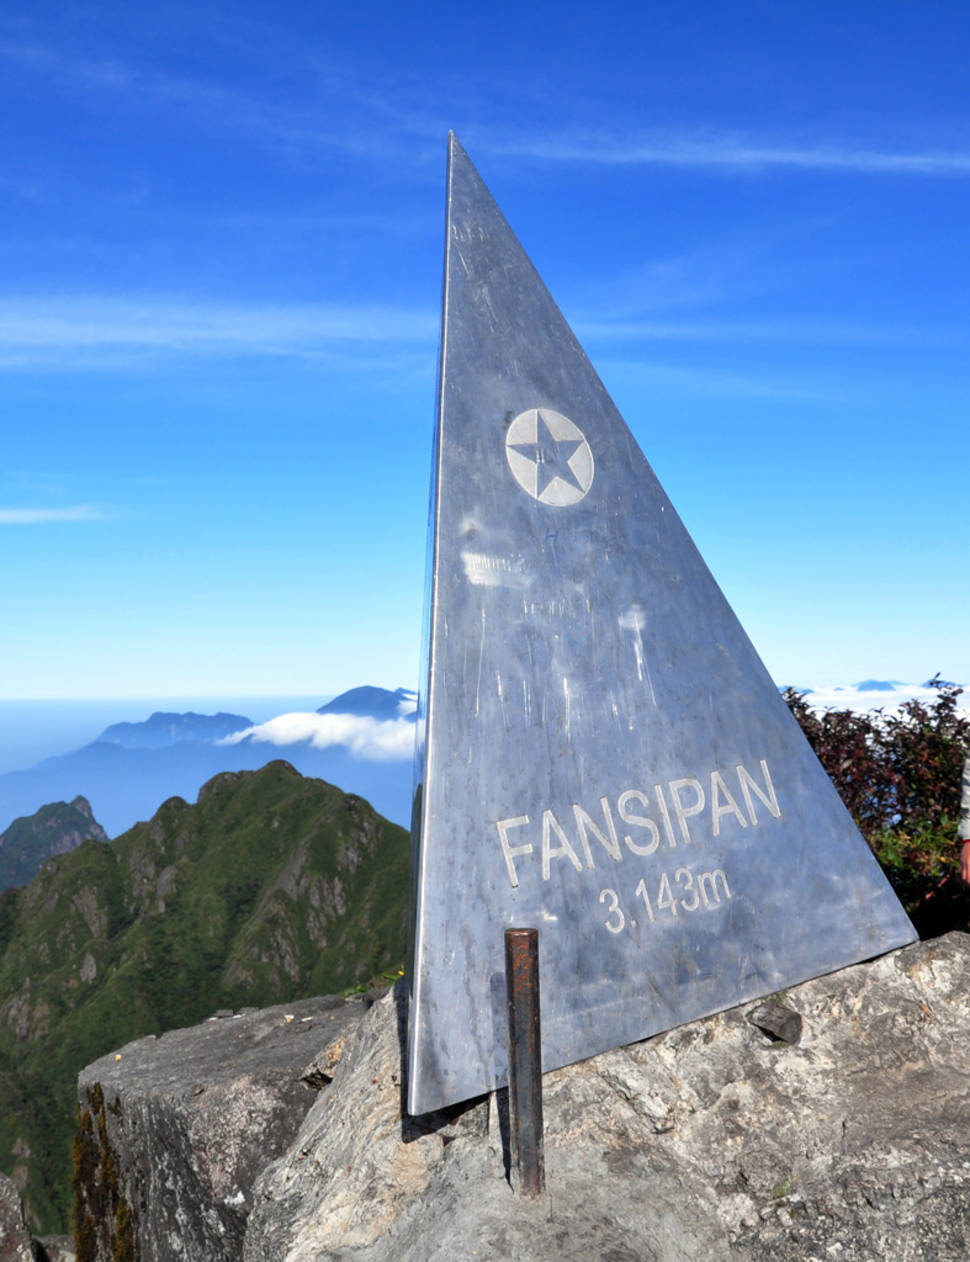 Best time for Conquering Fansipan in Vietnam